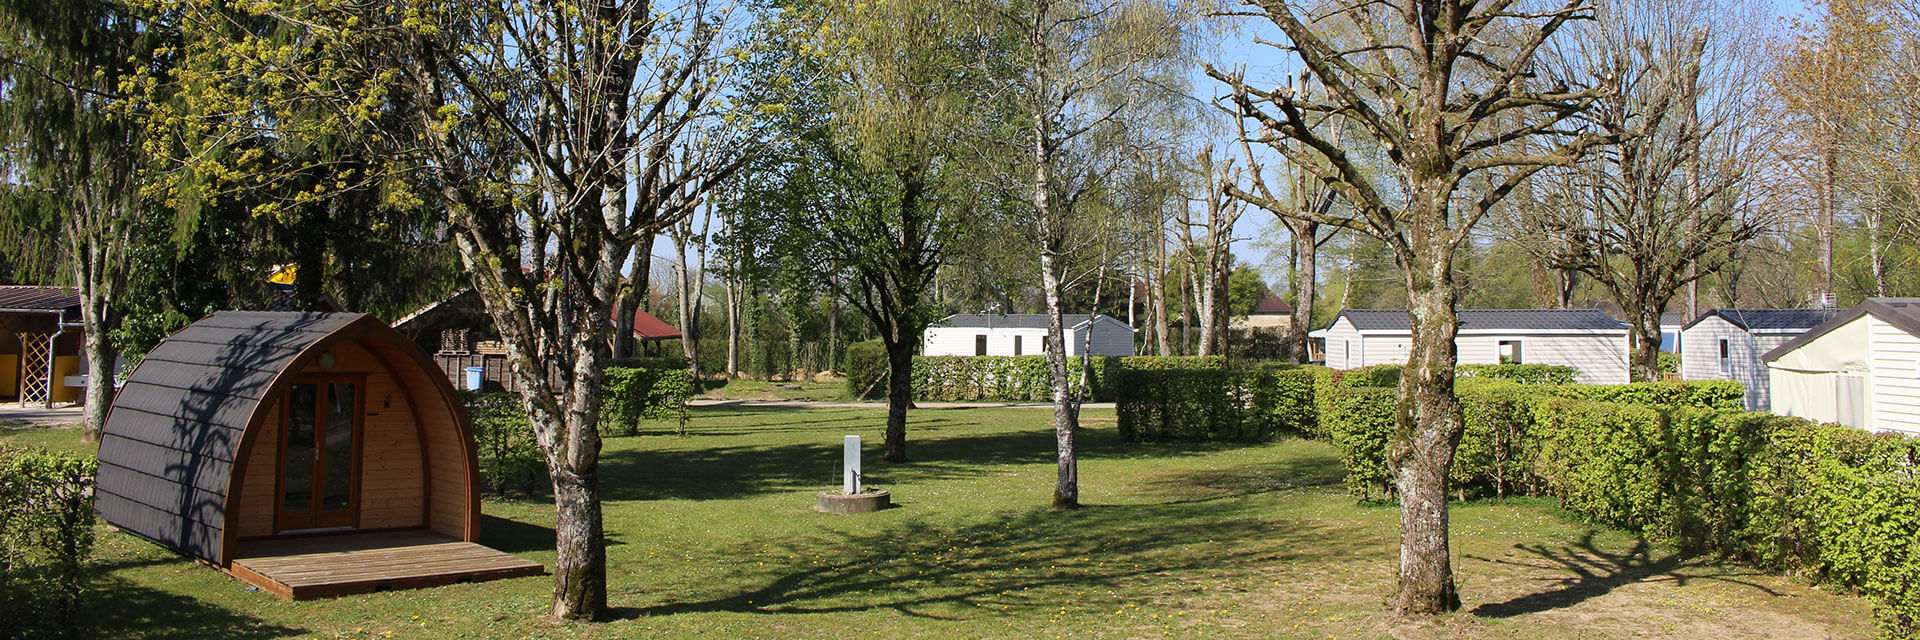 Mobile home, chalet and tent rental in the Jura